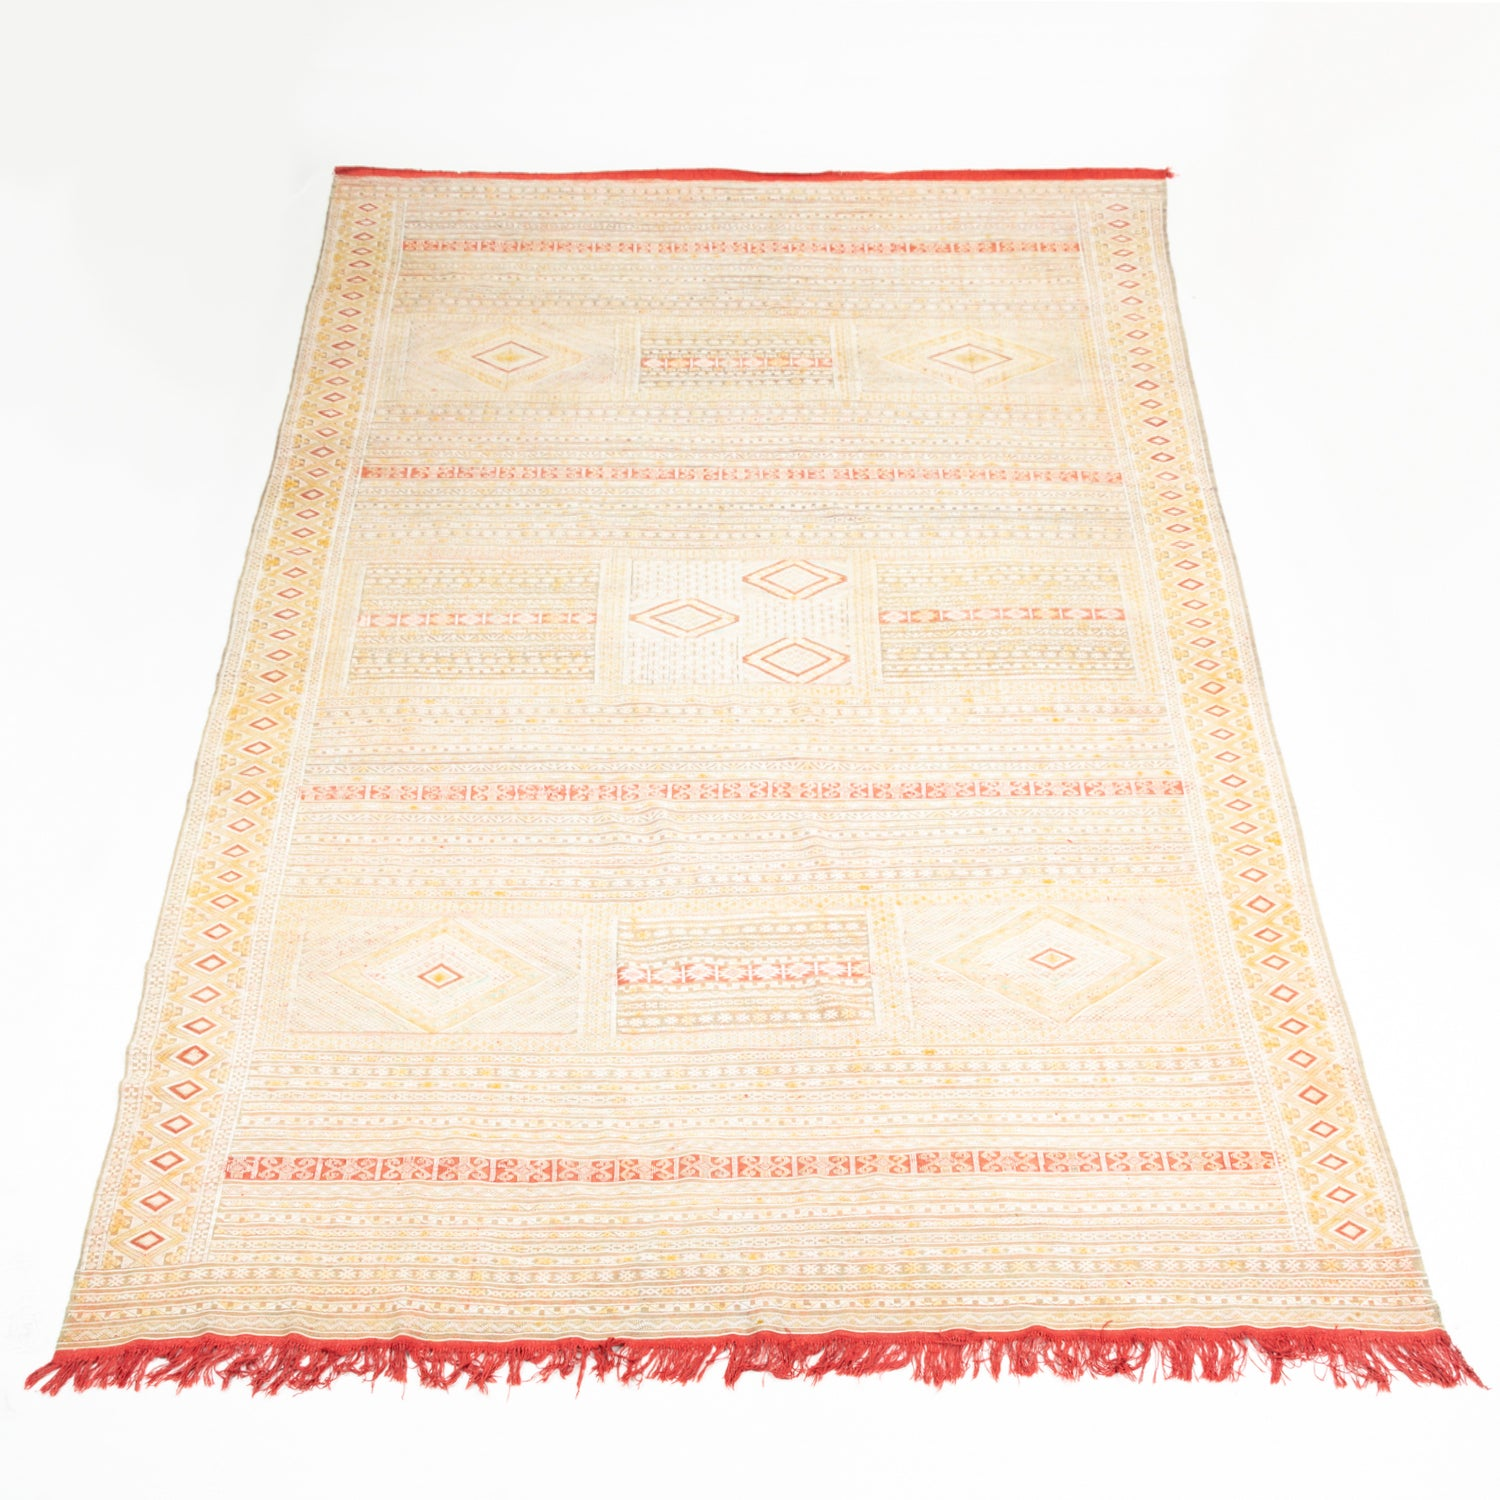 Intricate Soumak Area Rug in Soft Neutral Tones; Beige, Green and Red